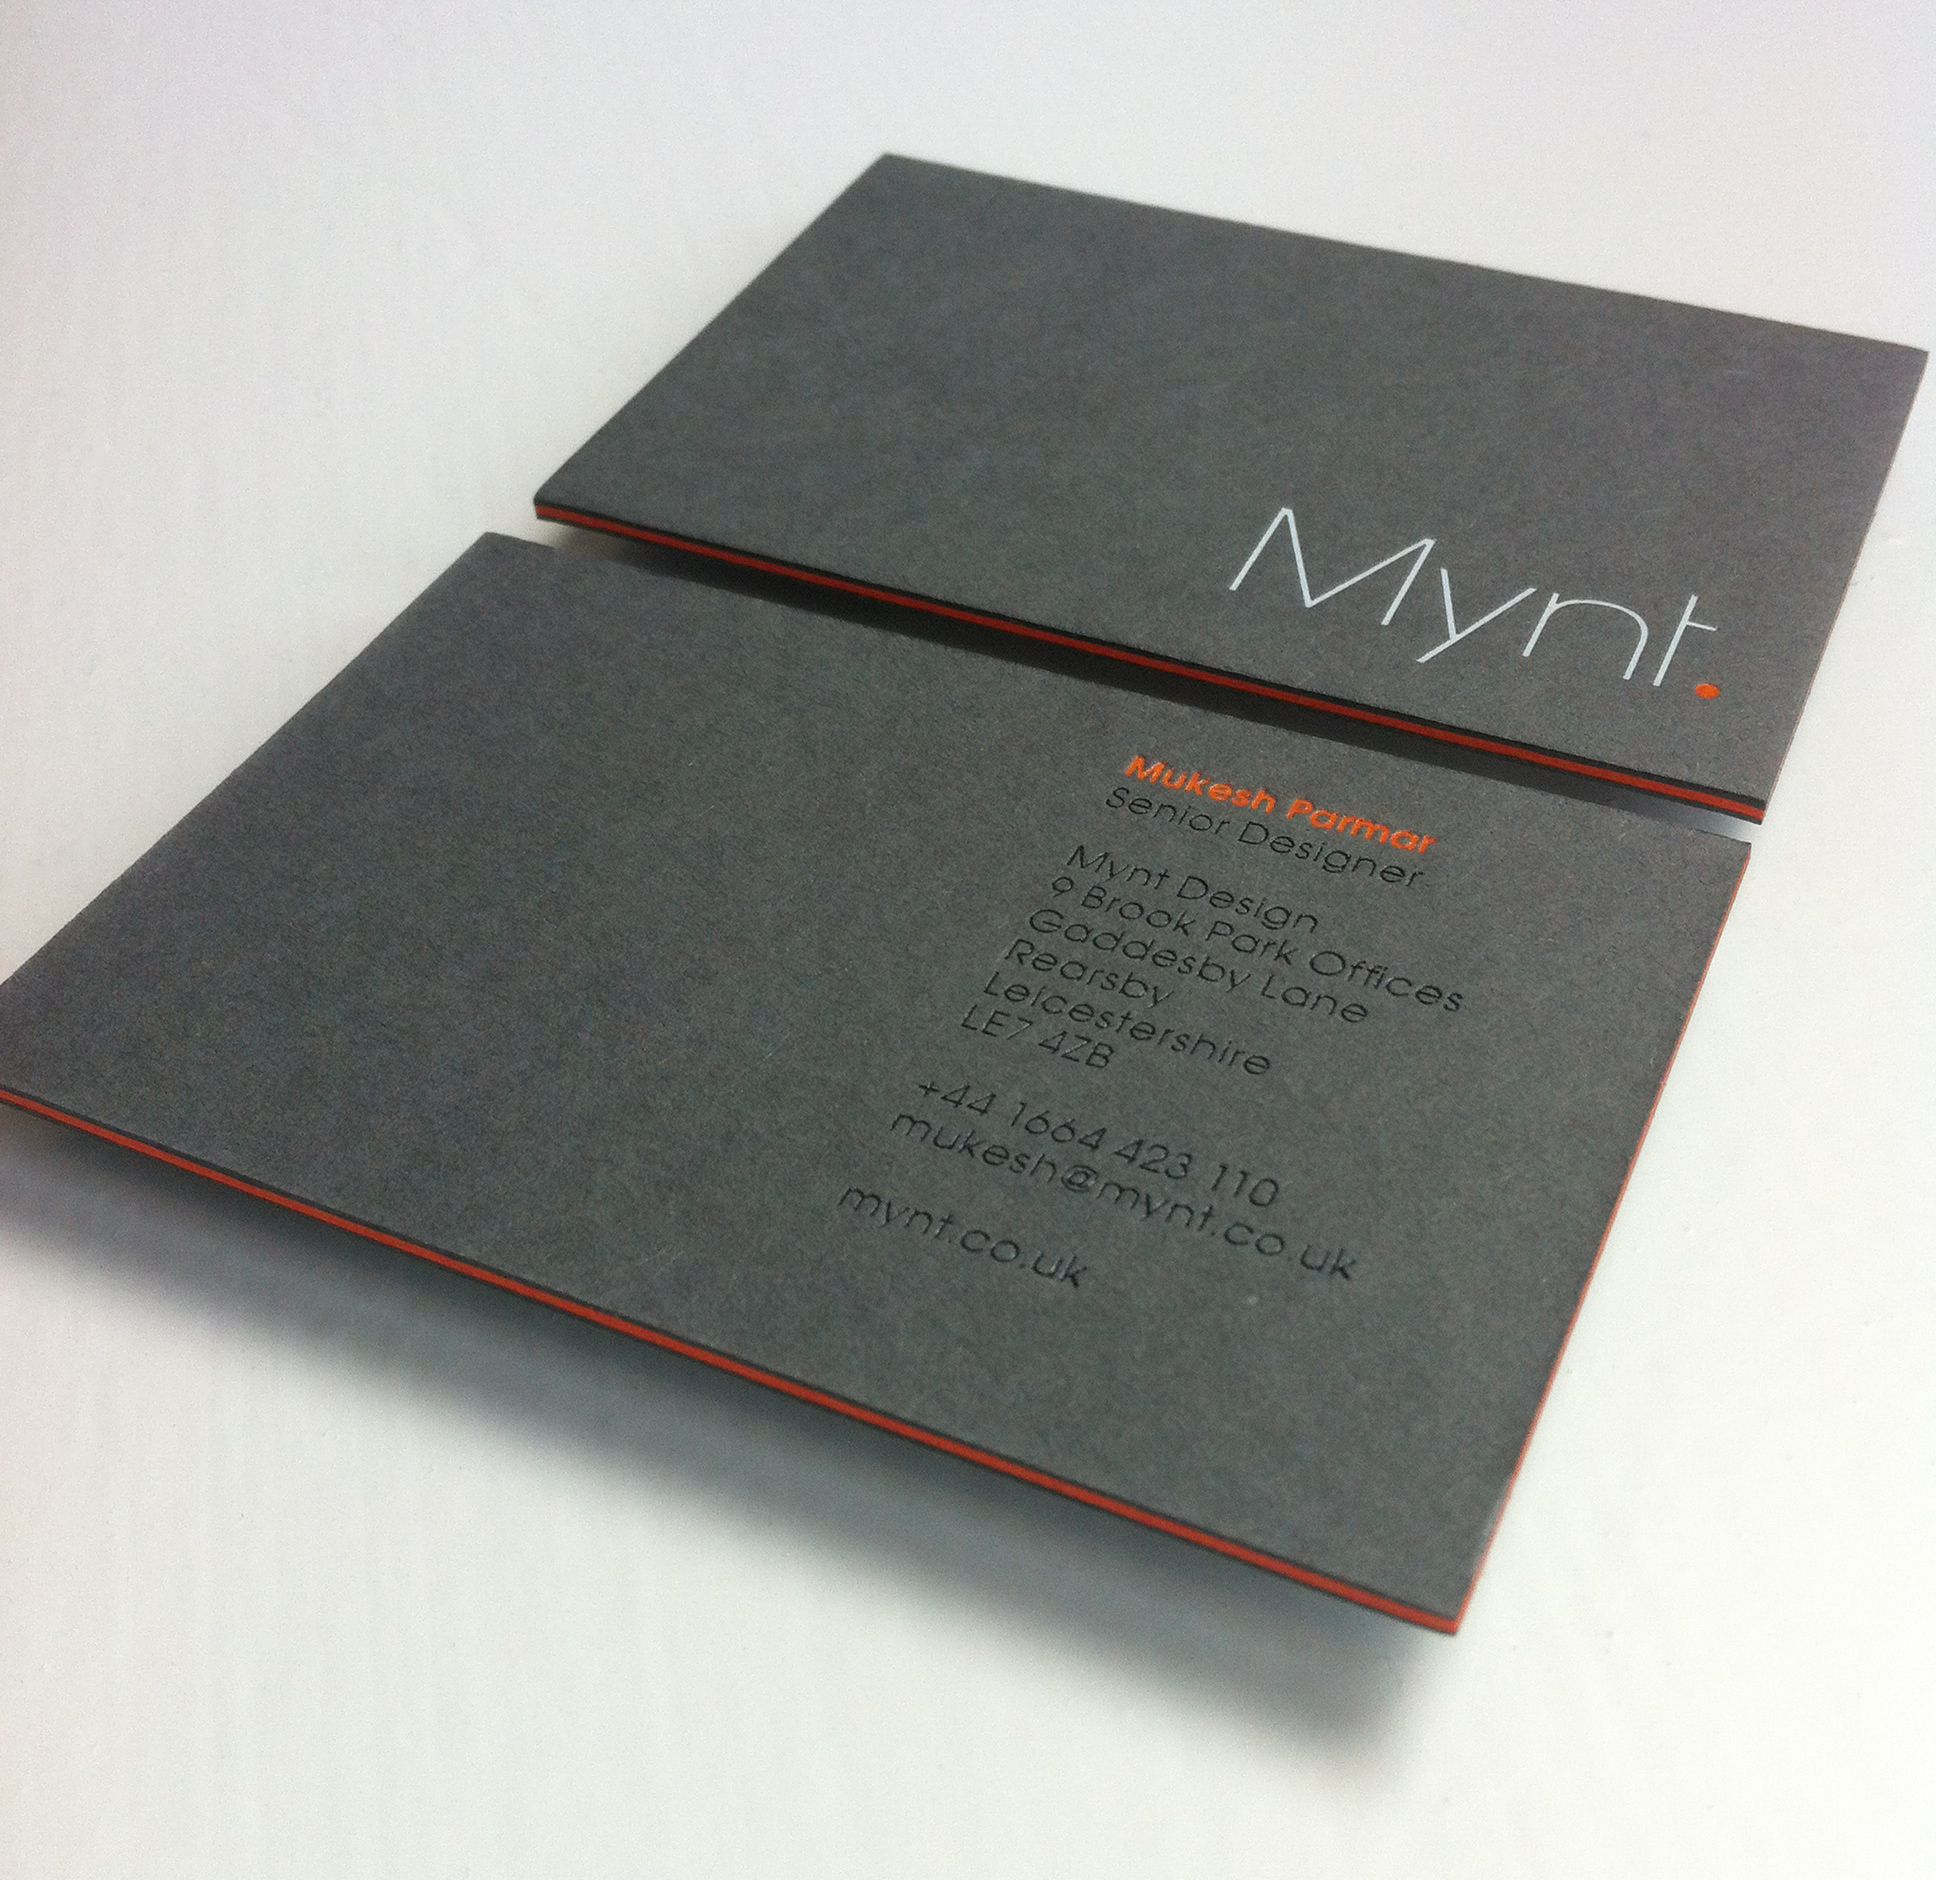 Mynt Design / Business card / GFSmith Papers / Triplex / 1240gsm ...